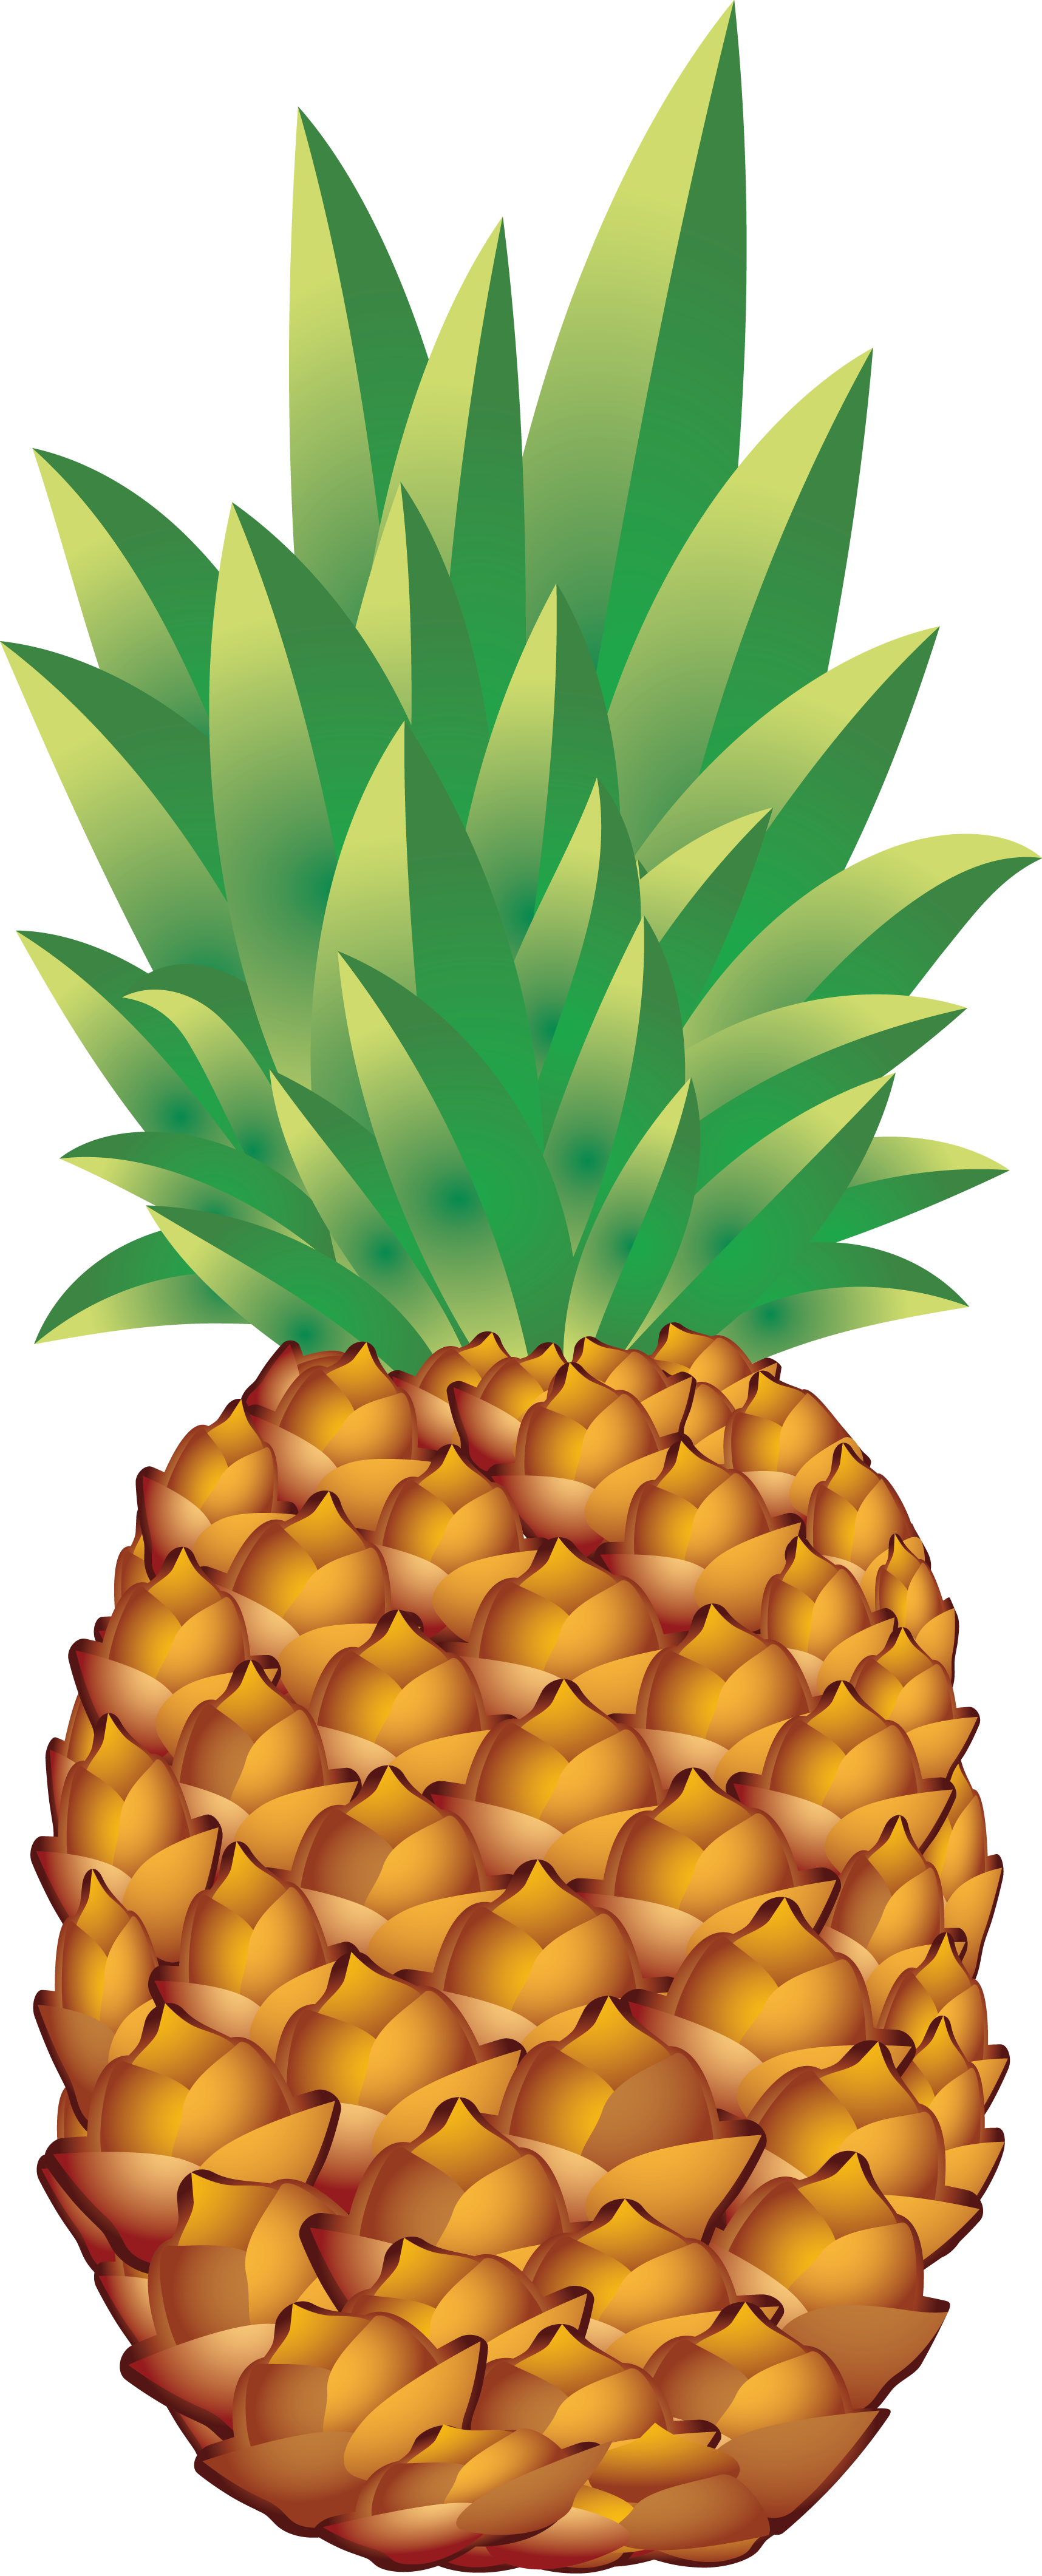 Pinapple Clipart PNG Image Pineapple, Pinapple